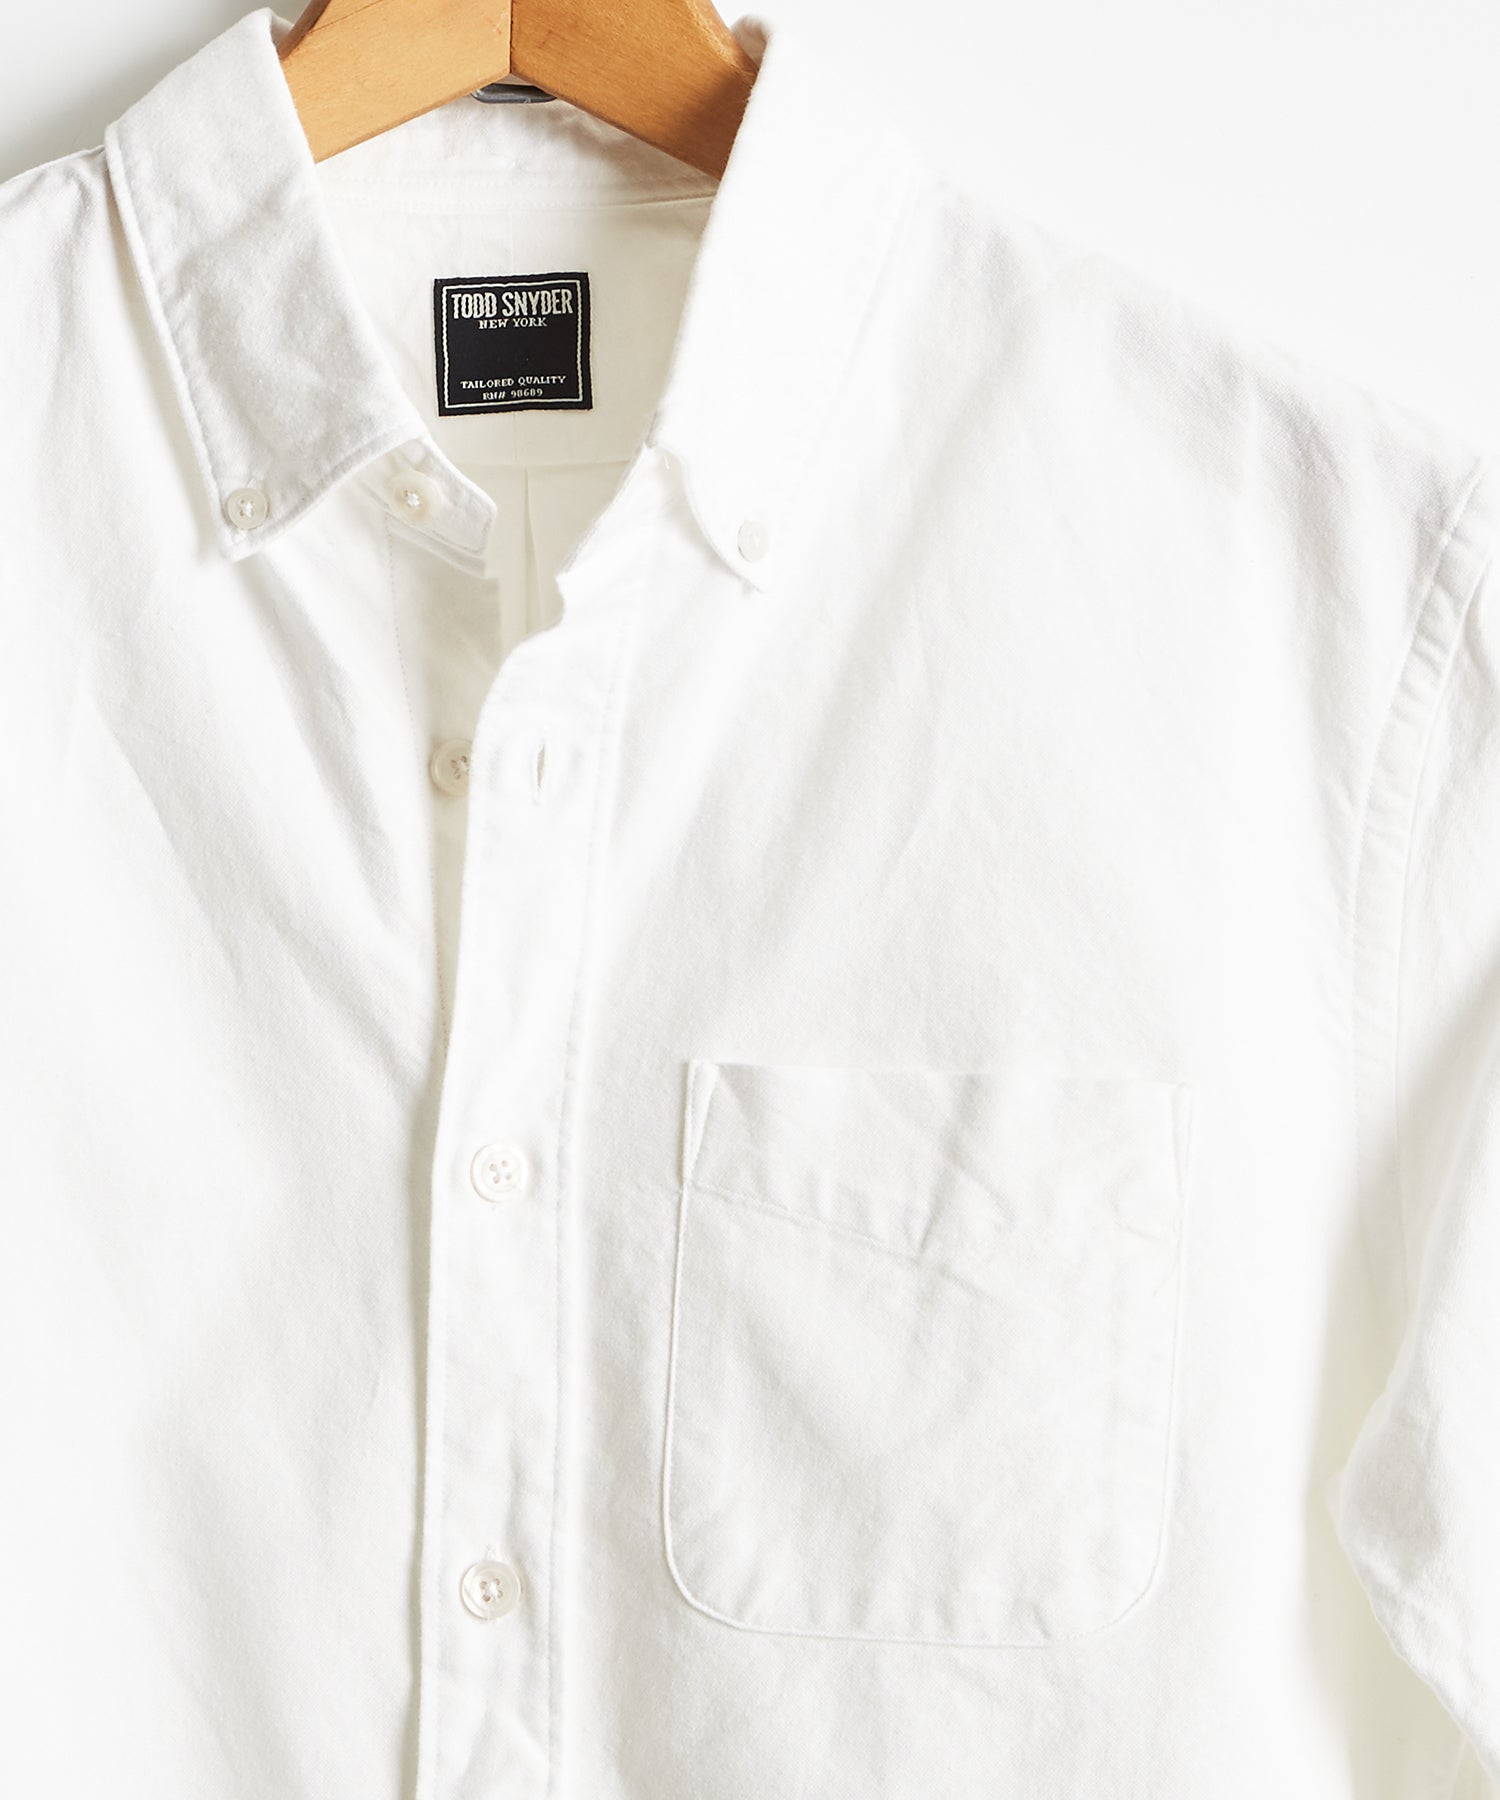 American Rag Mens Large Chest-Pocket Button Down Shirt